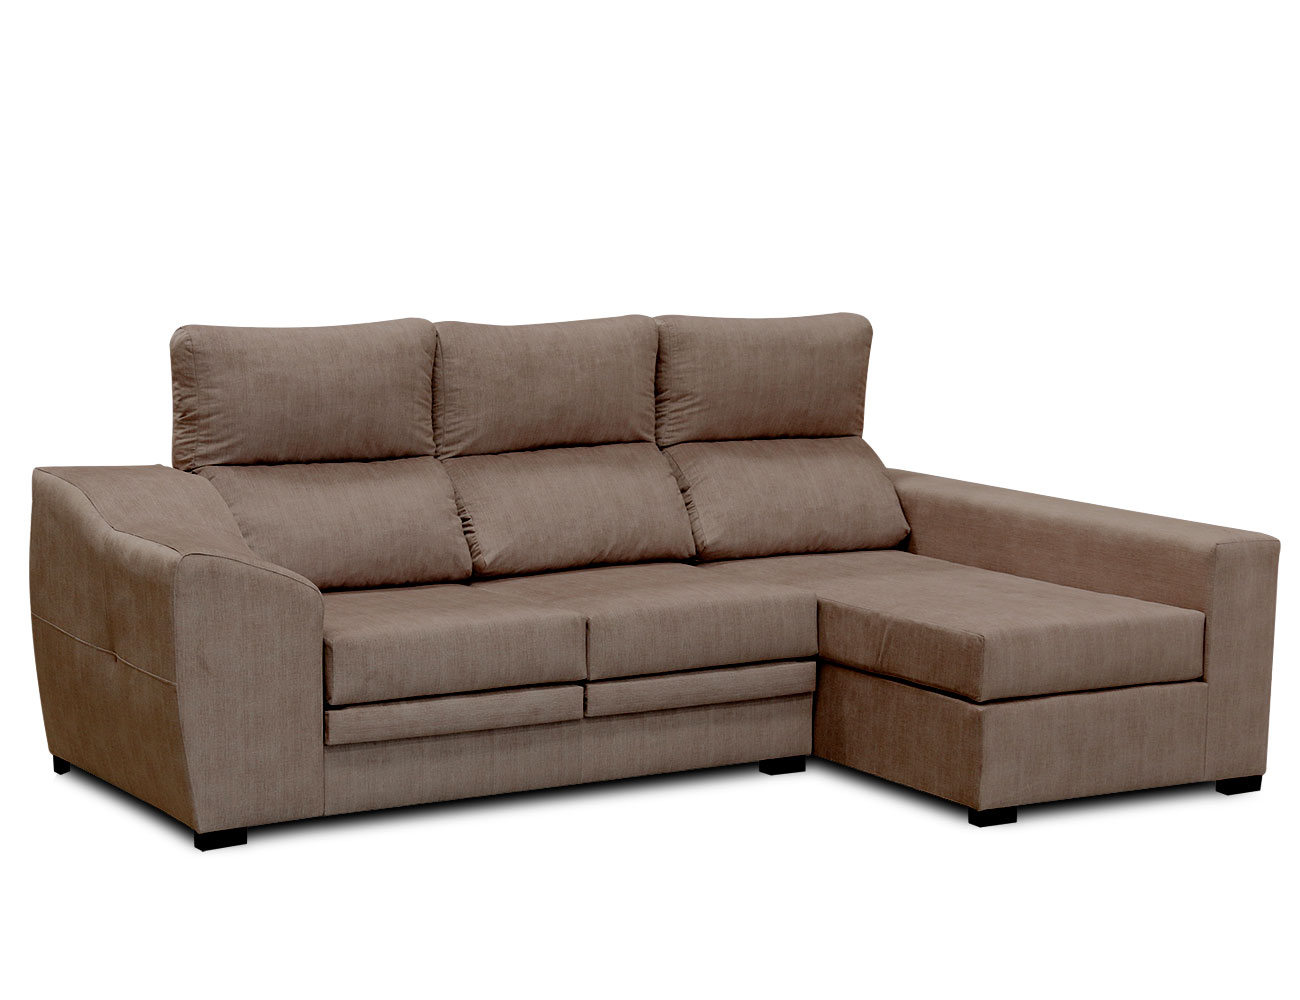 Sofa chaiselongue moderno cojin 2